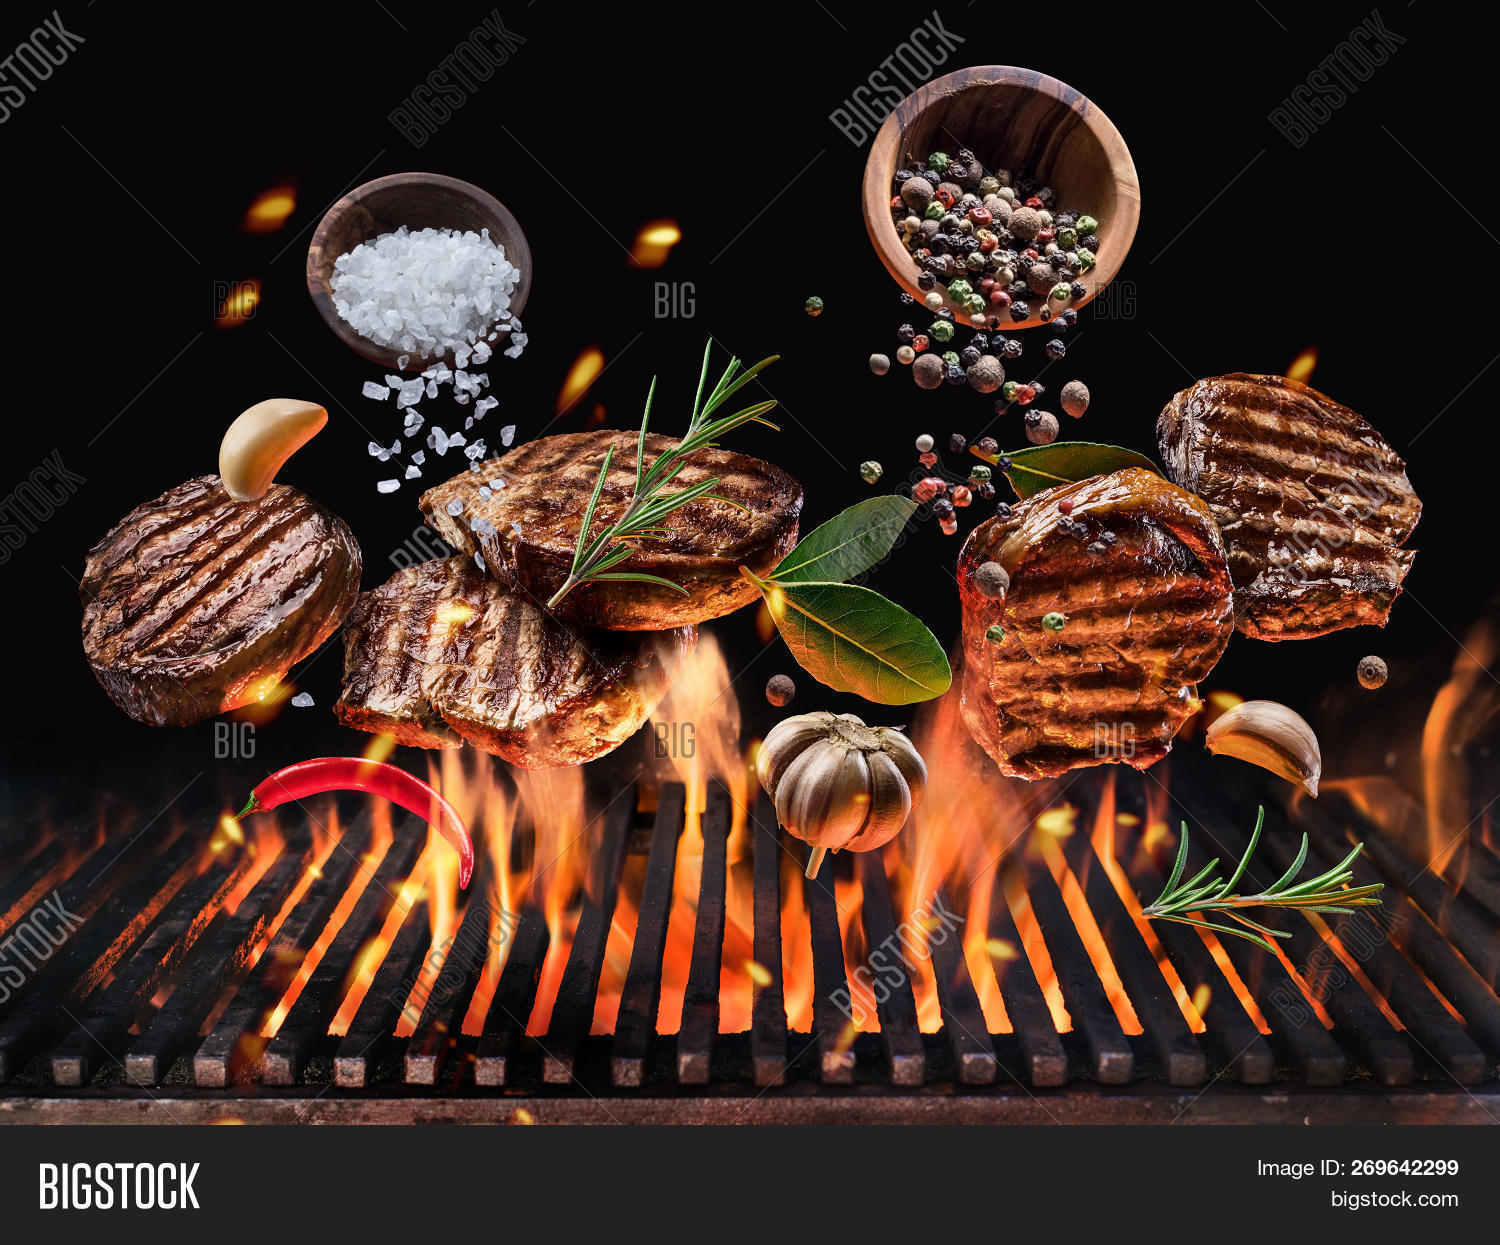 bar,barbecue,barbeque,bay leaf,bbq,beef,beefsteak,black background,blazing,cook,cooking,dark,dinner,fall,fire,fly,food,fork,garlic,glowing,grill,grille,grilled,grilled steaks,grilling,hamburger,isolated,levitation,meal,meat,move,open fire,outdoor,pepper,ribeye,roast,rosemary,salt,slice,steak,steak grill,vegetables